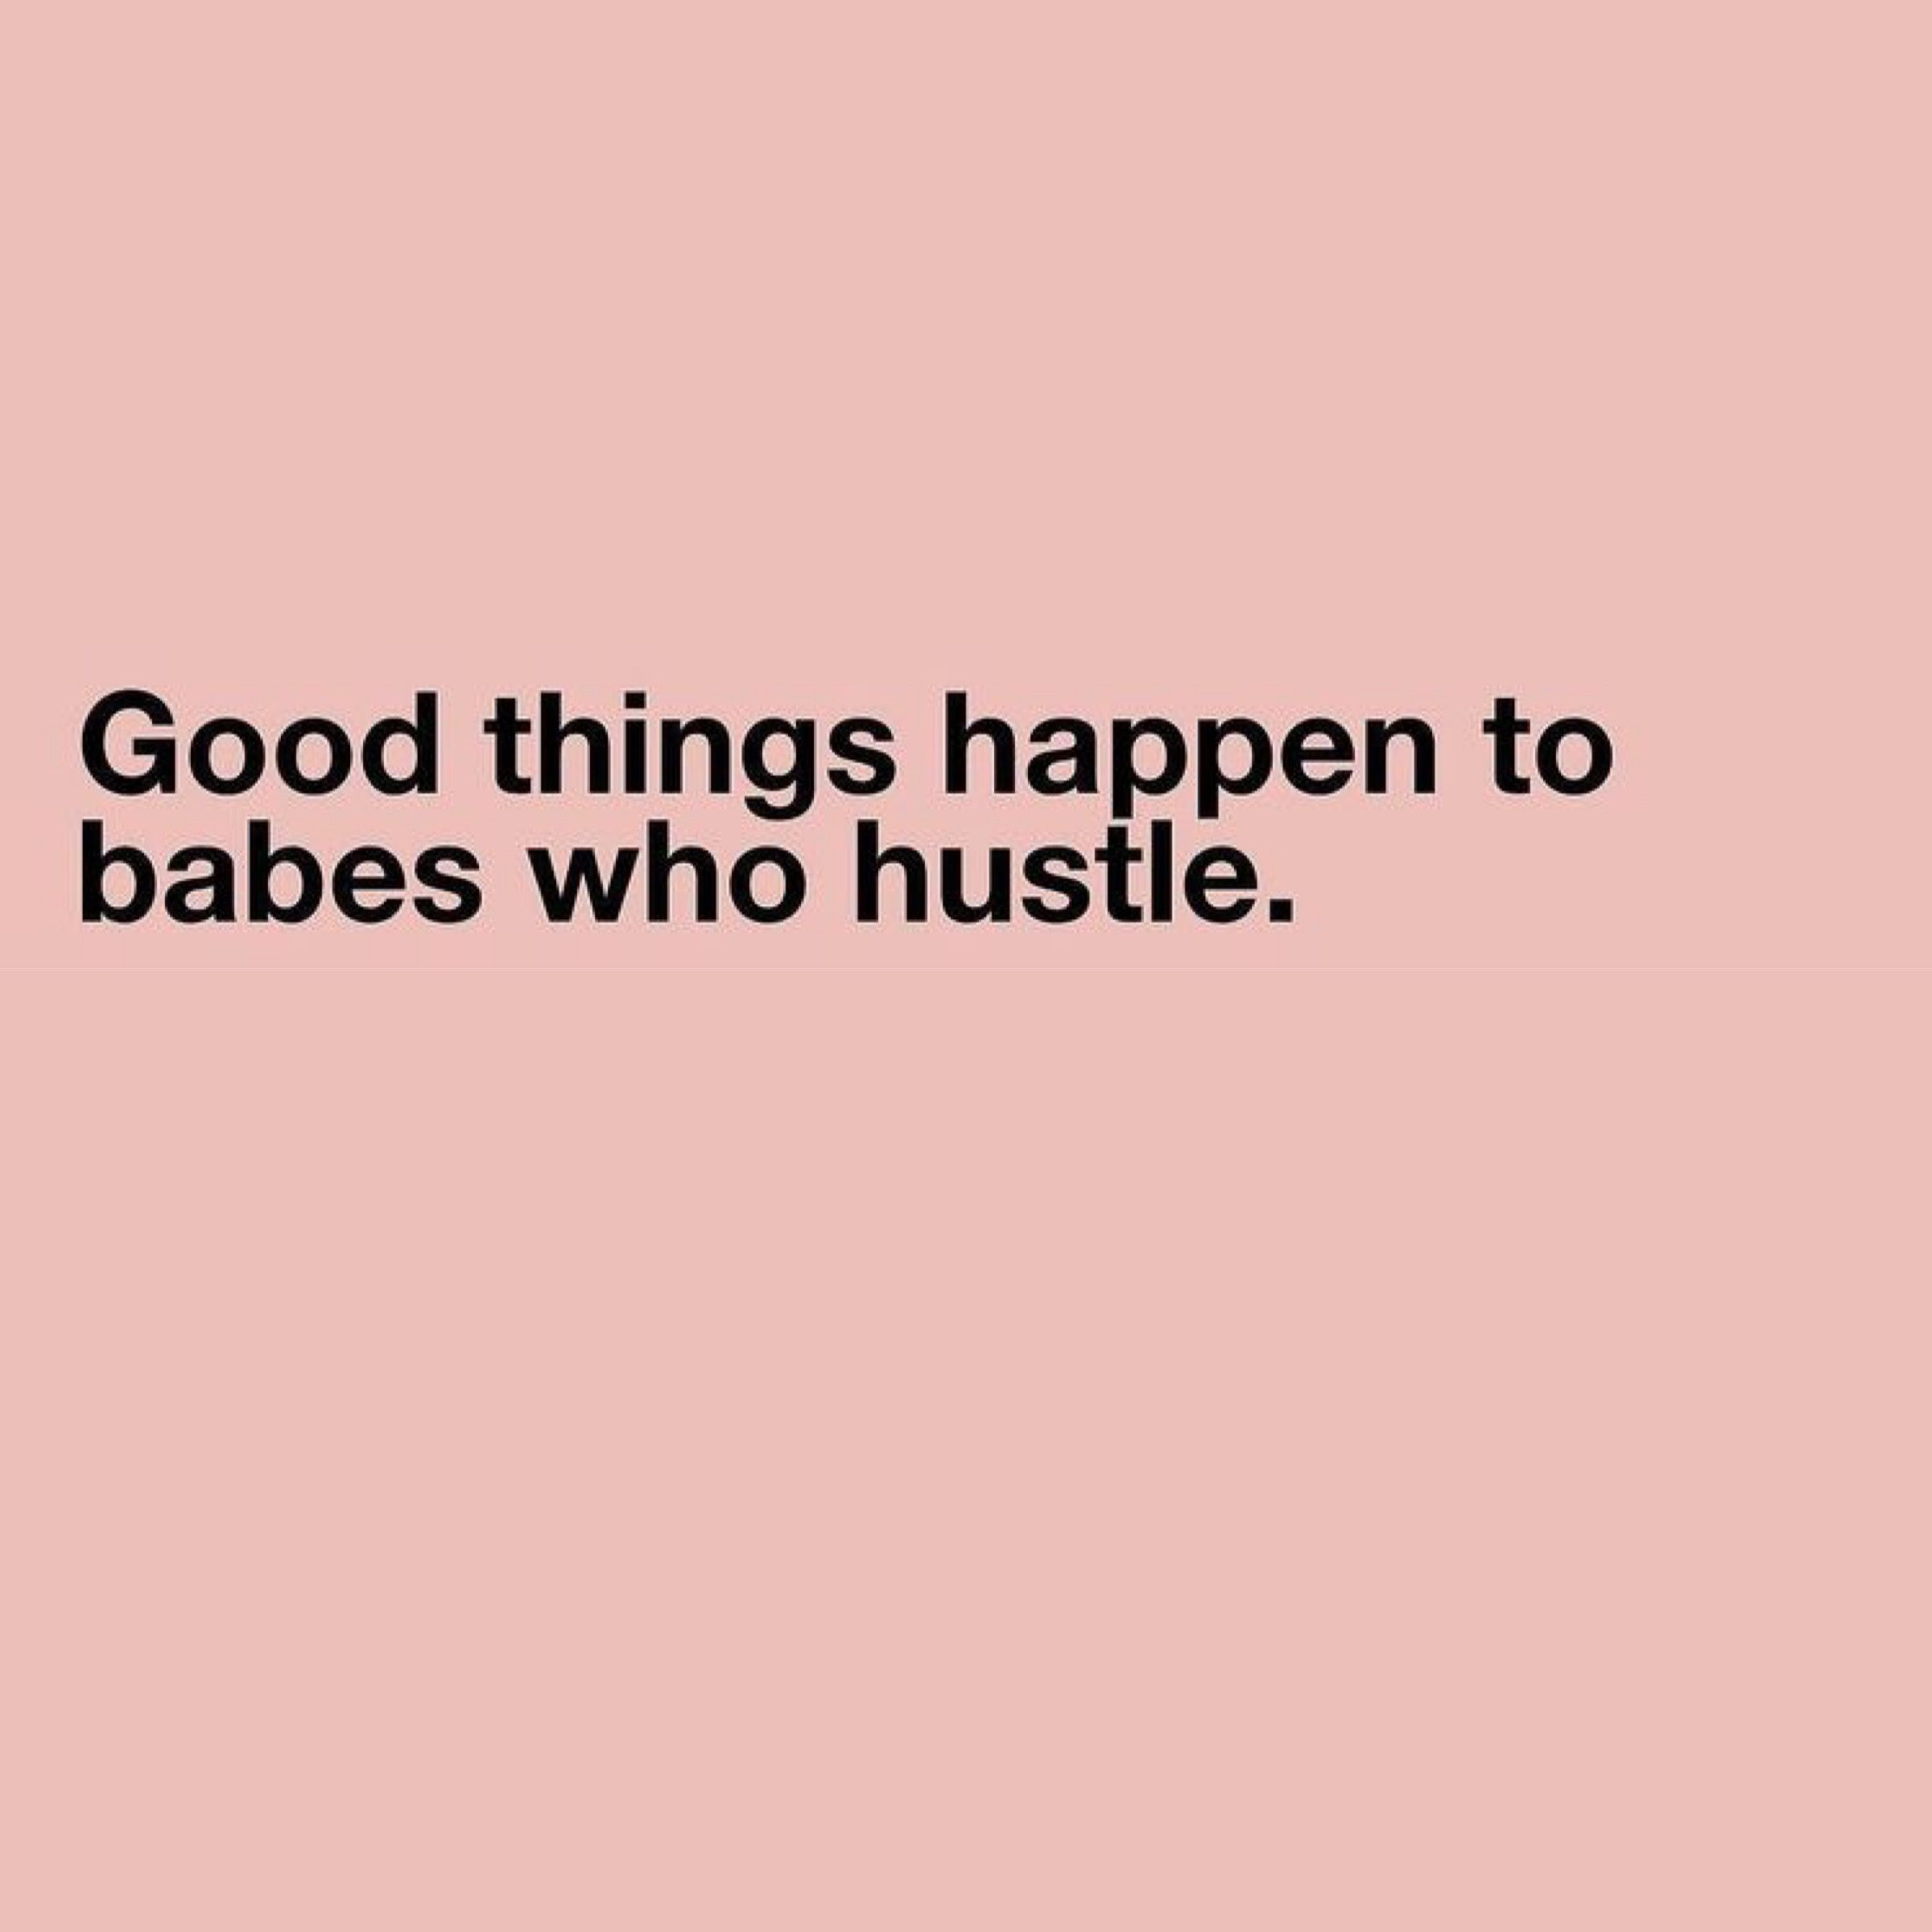 Hustle Quotes Keep Hustling   Food For Thought   Pinterest  Hustle Wisdom